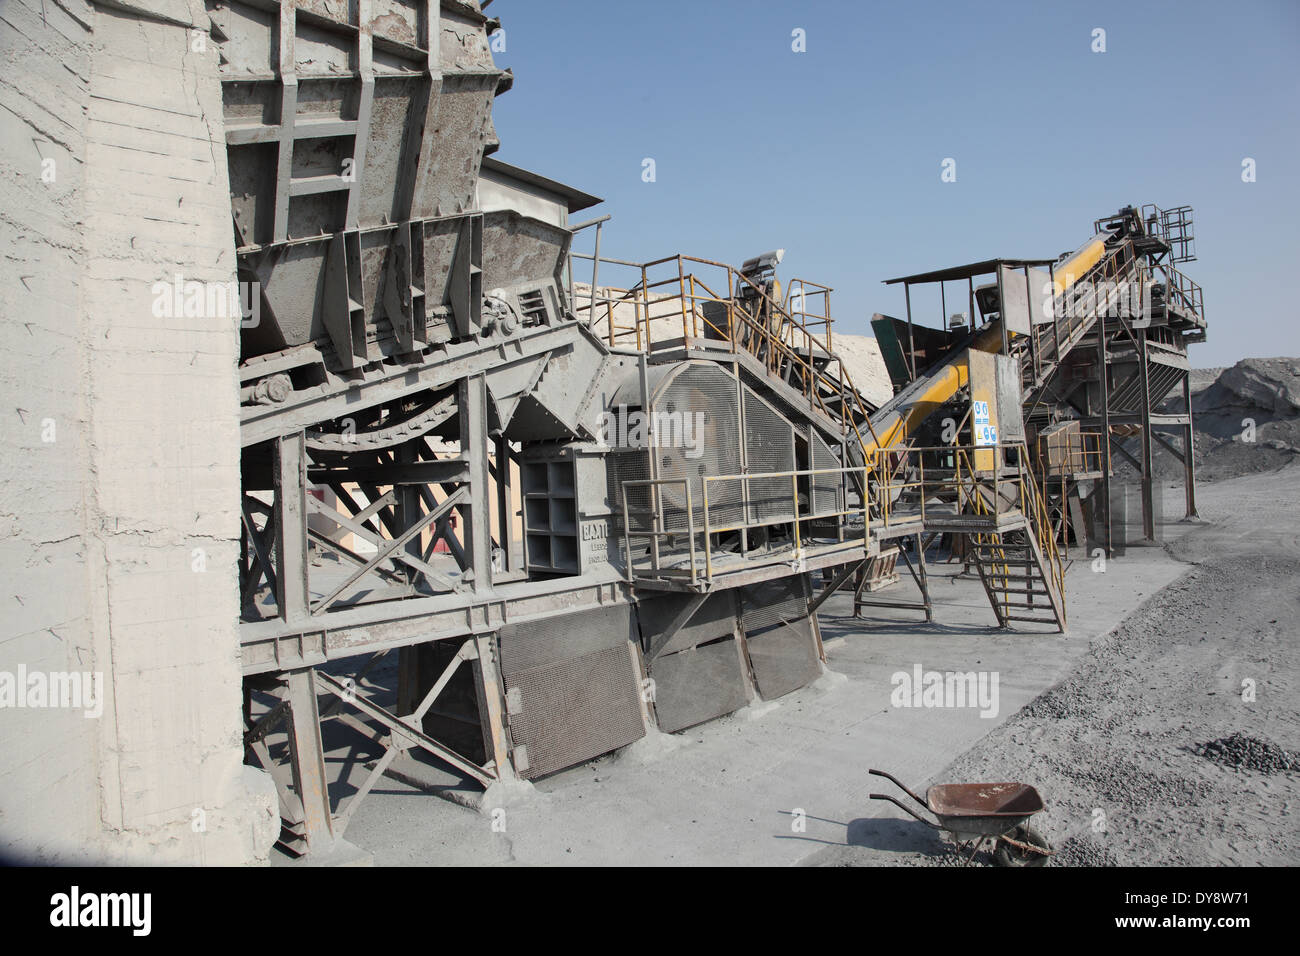 A stone crushing and grading machine operating in metals waste recovery plant in Bahrain - Stock Image